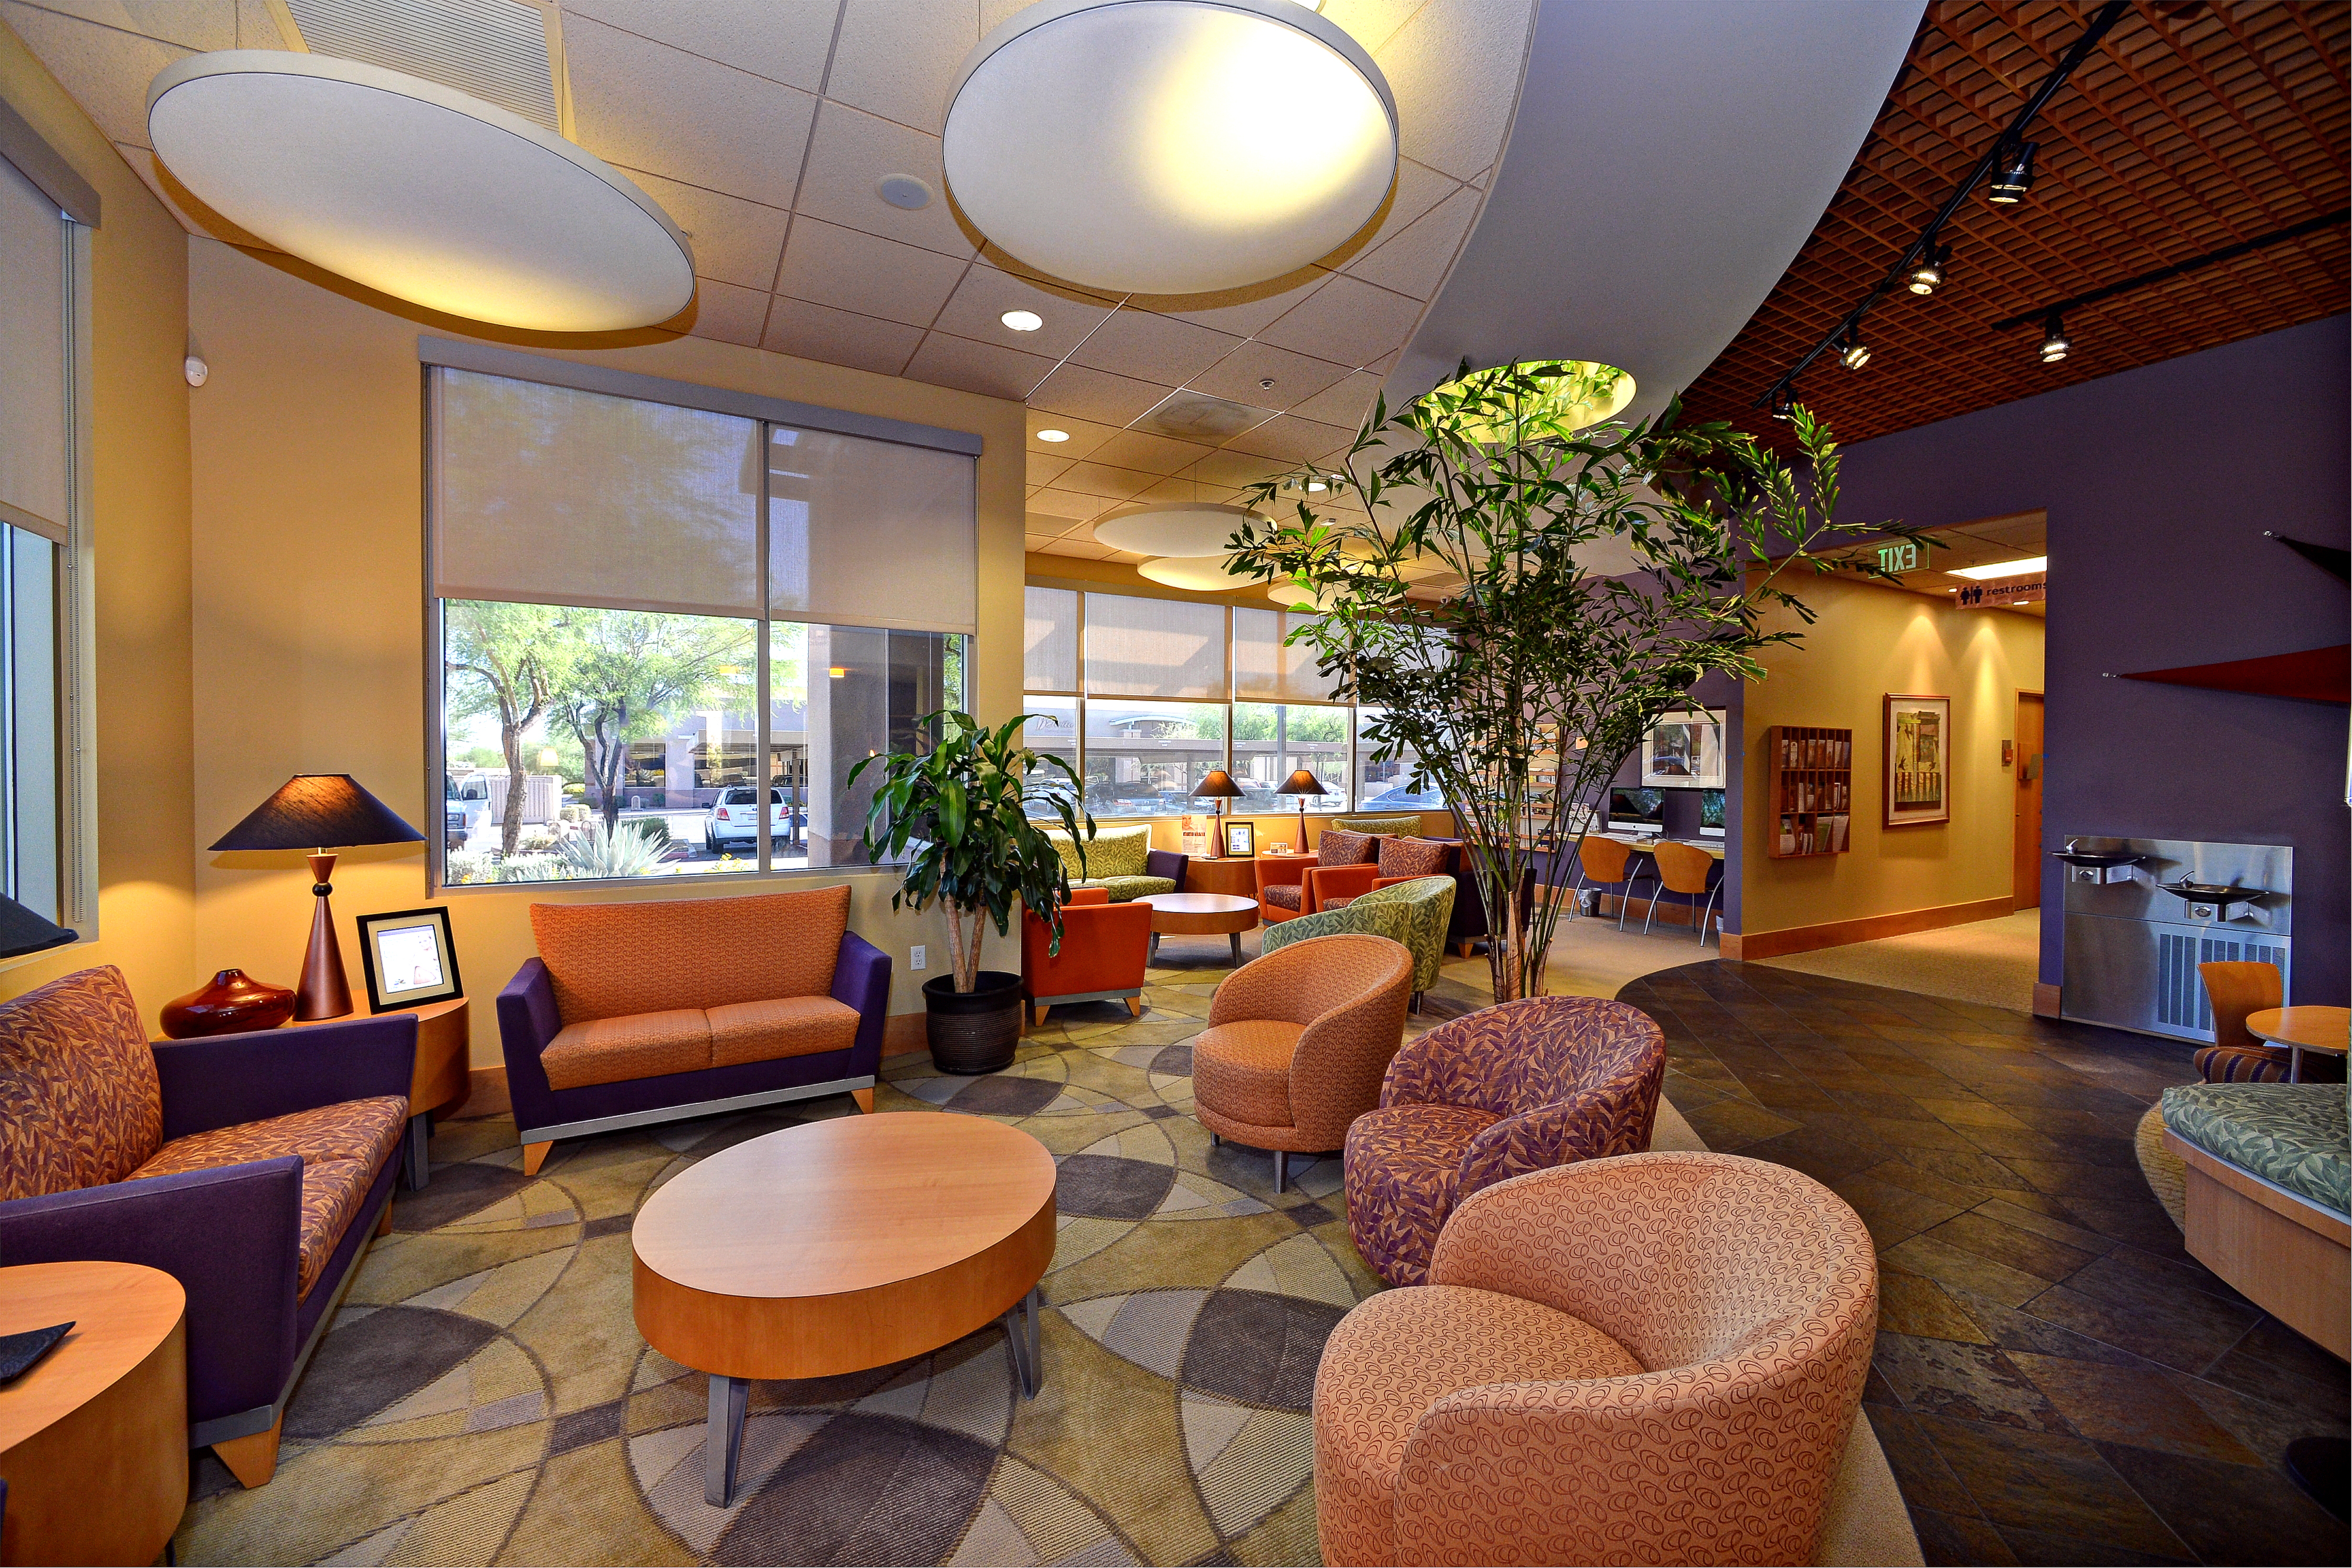 Interior design medical office Reception 55 Tlc Interior Design Medical Office Waiting Room Flooring Seating Upholstery Design Commerical Business Design Services 55 Tlc Interior Design Medical Office Waiting Room Flooring